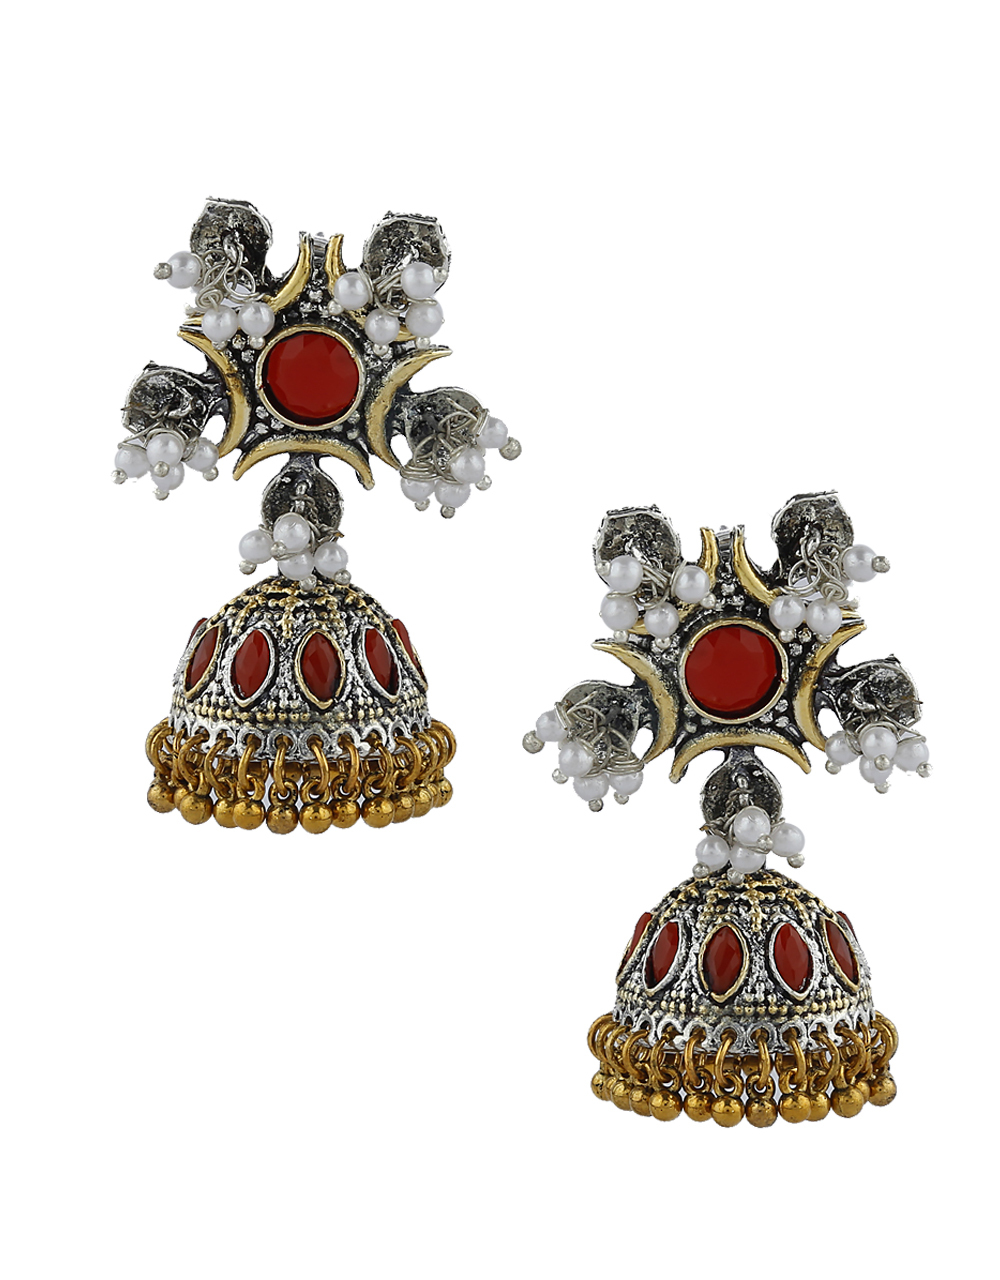 Red Colour Silver and Golden Finish Oxidized Earrings Online.